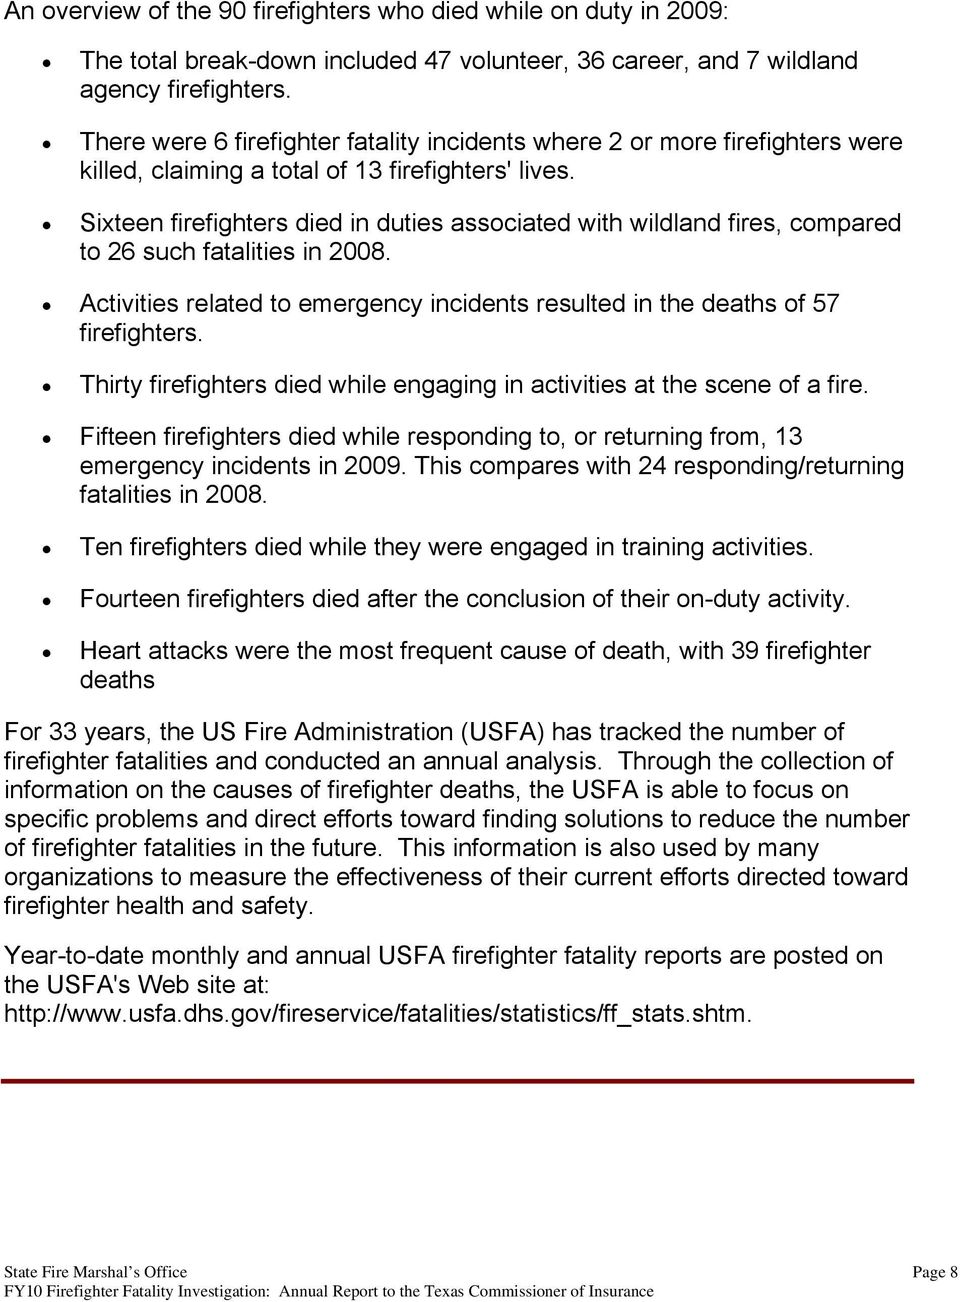 Sixteen firefighters died in duties associated with wildland fires, compared to 26 such fatalities in 2008. Activities related to emergency incidents resulted in the deaths of 57 firefighters.